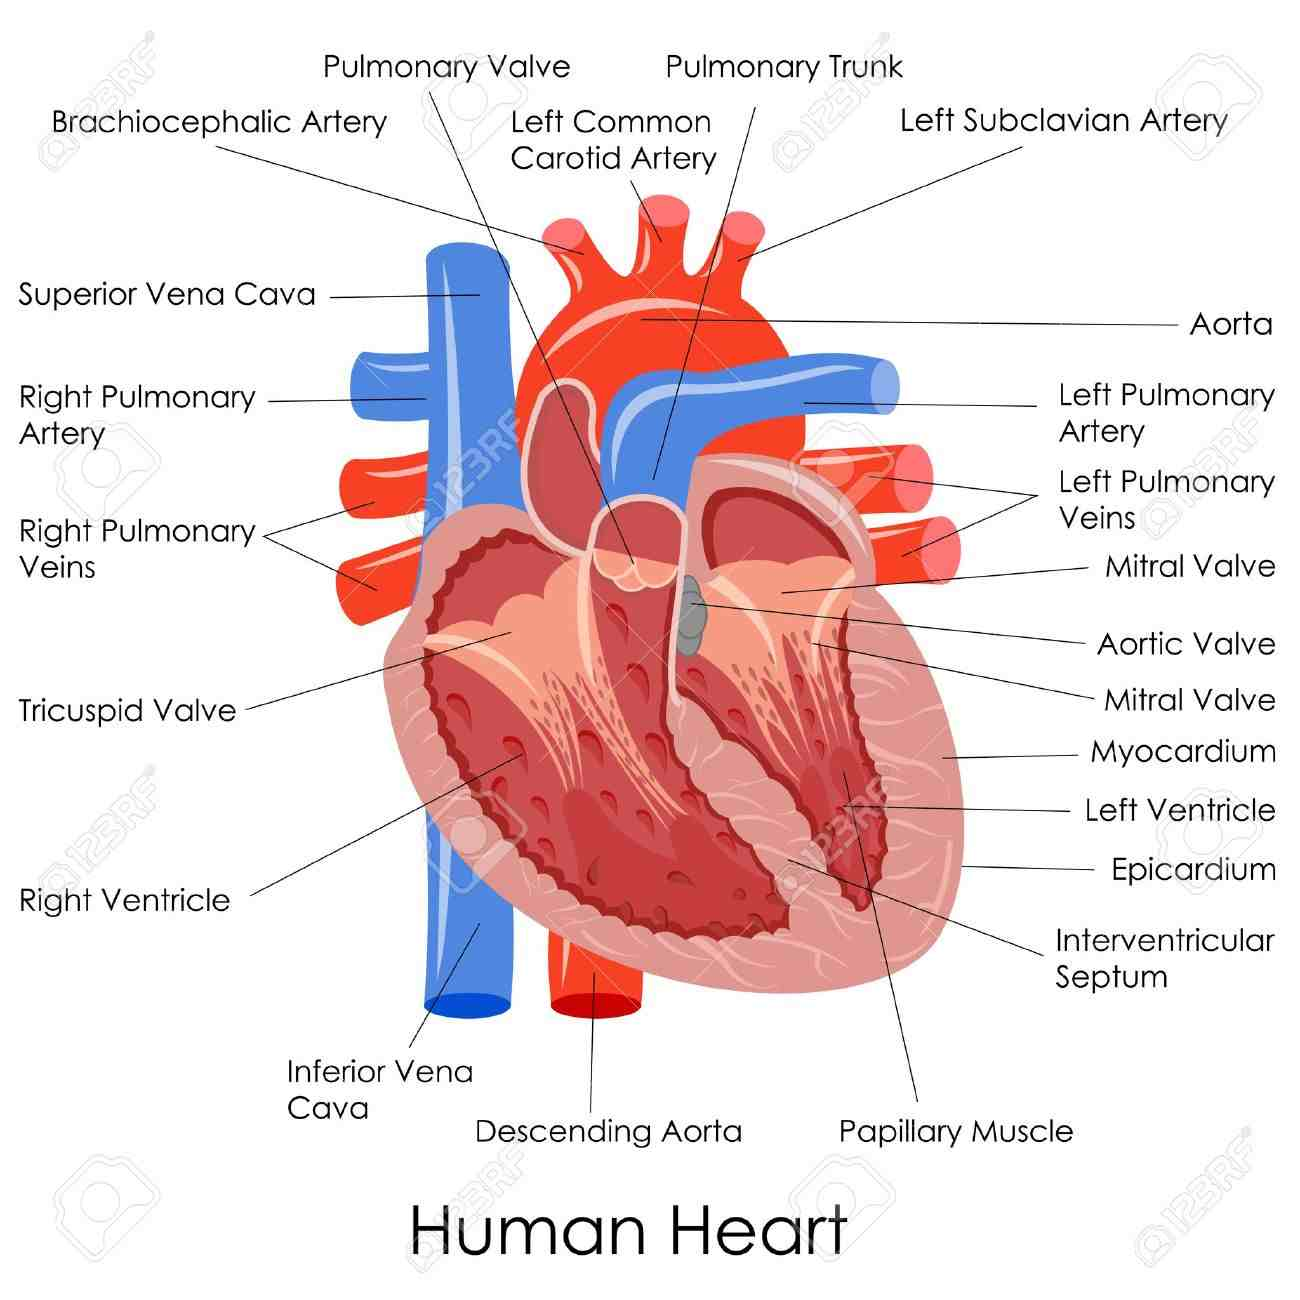 Human Heart Anatomy Diagram - coordstudenti